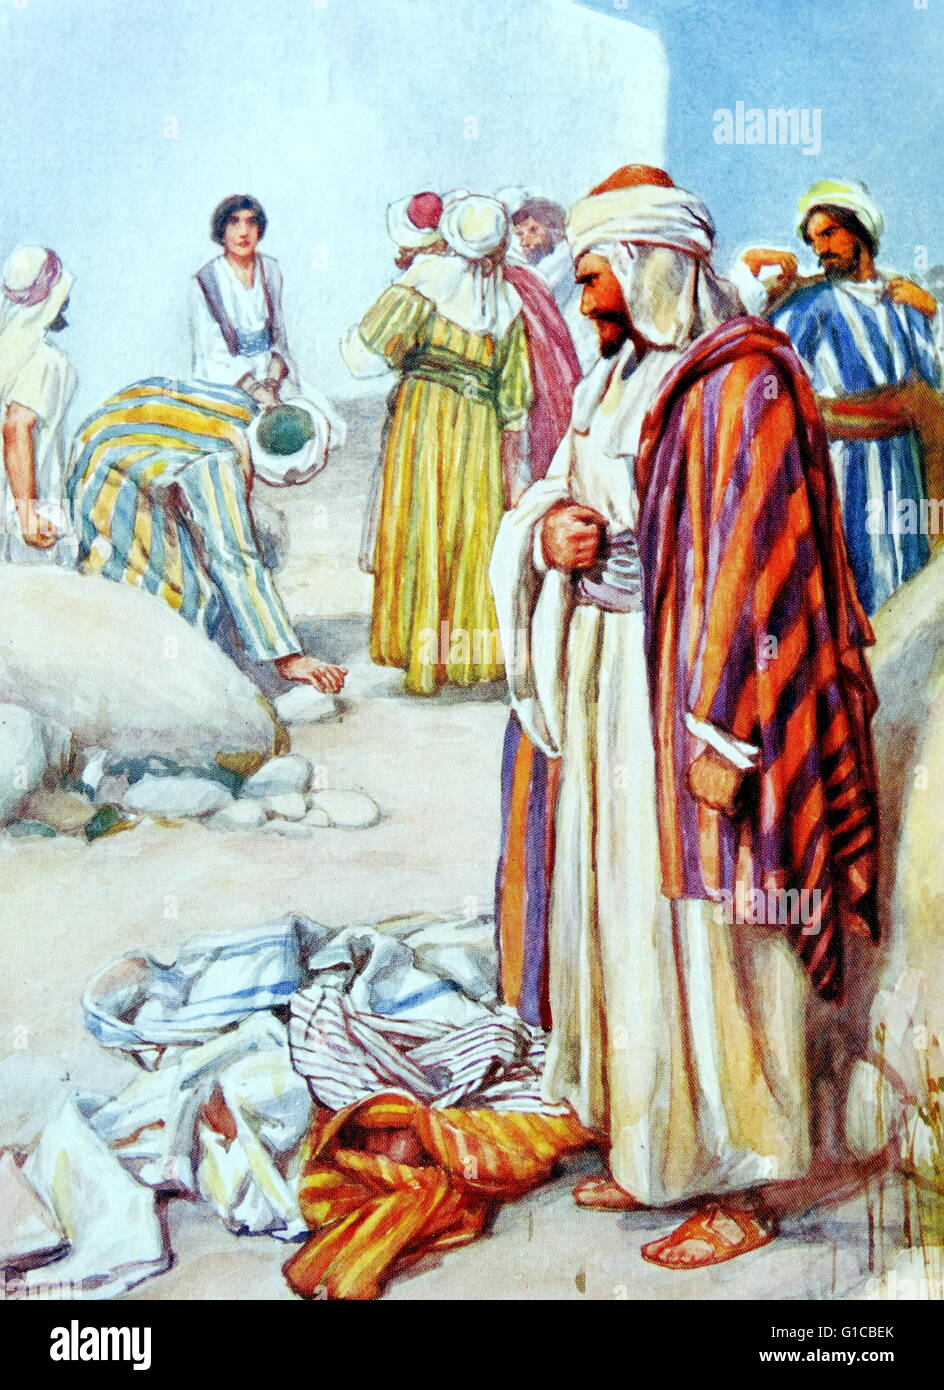 Painting depicting the stoning of St. Stephen. - Stock Image